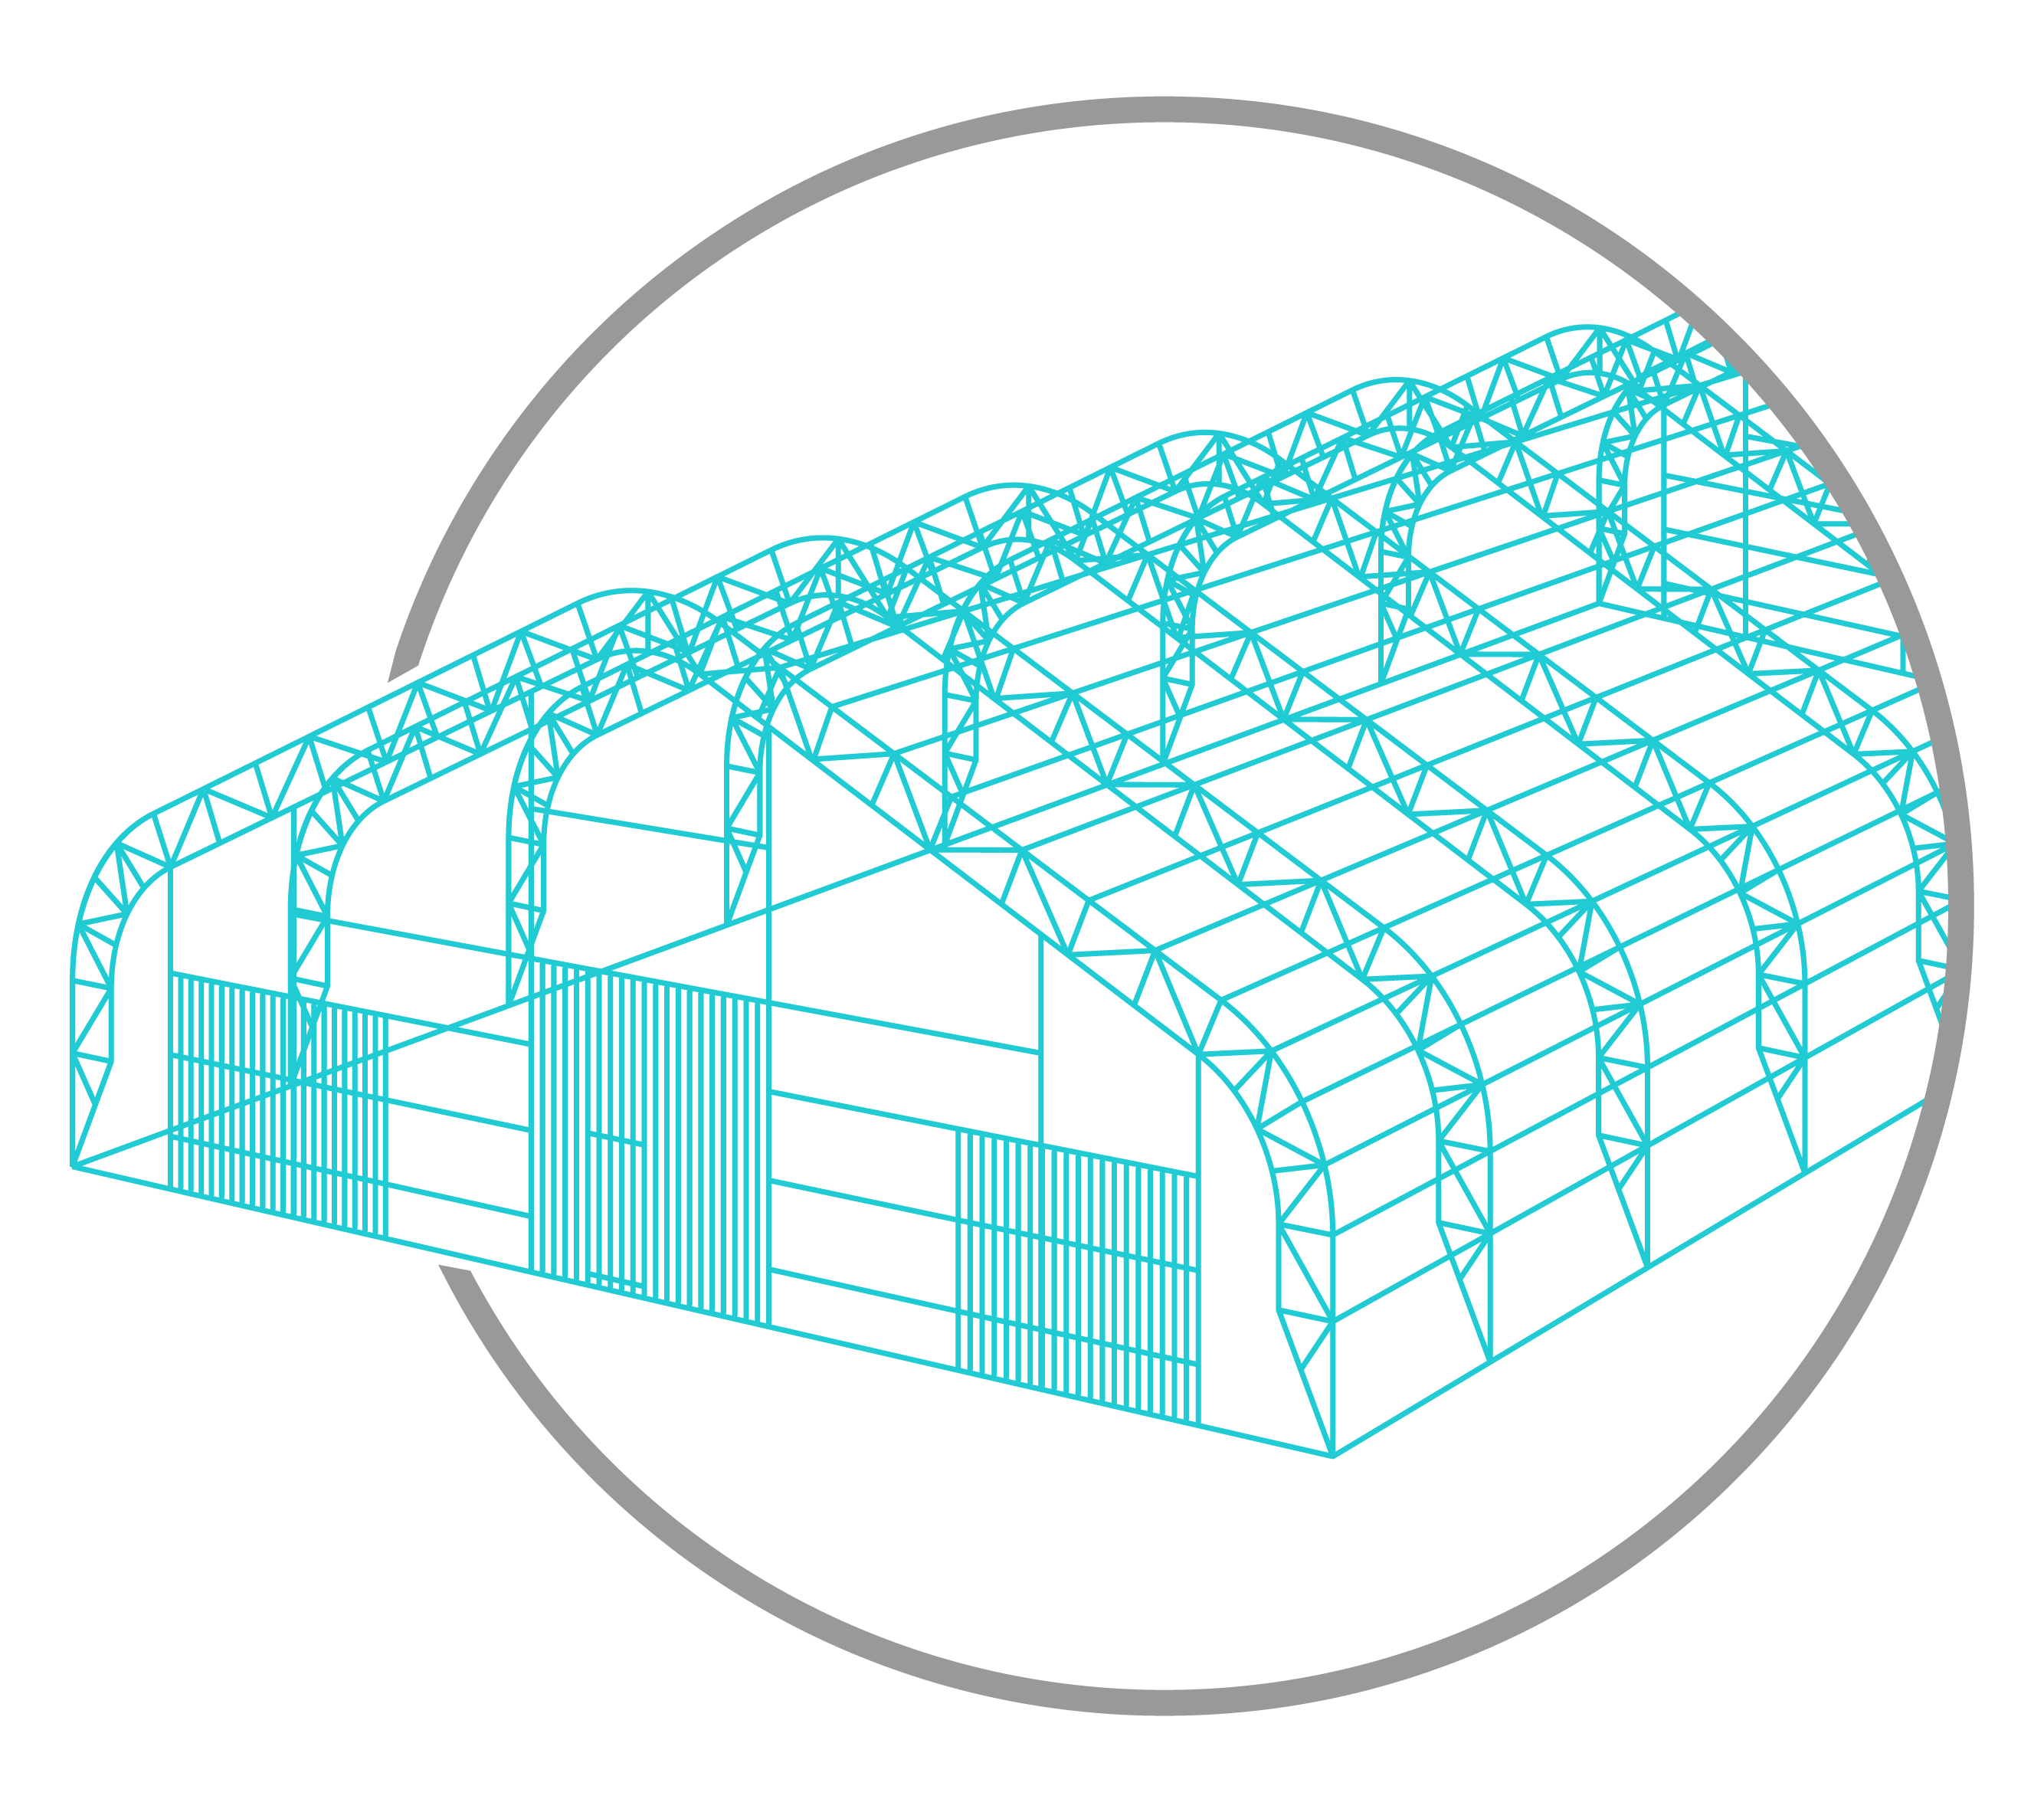 Prototype tent structure drawing